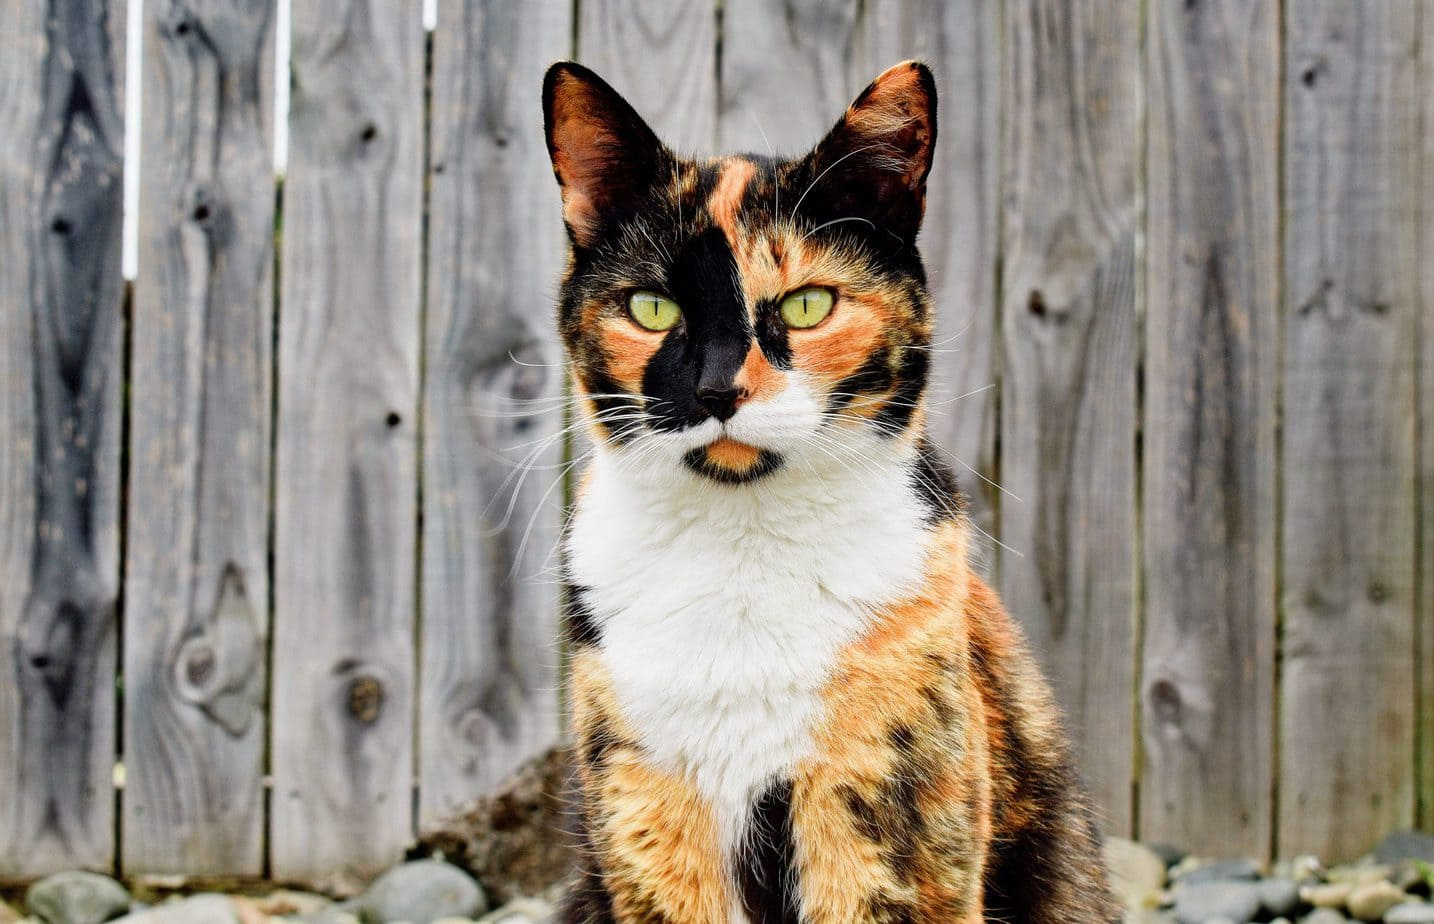 Calico and Tortoiseshell Cat Photos 1